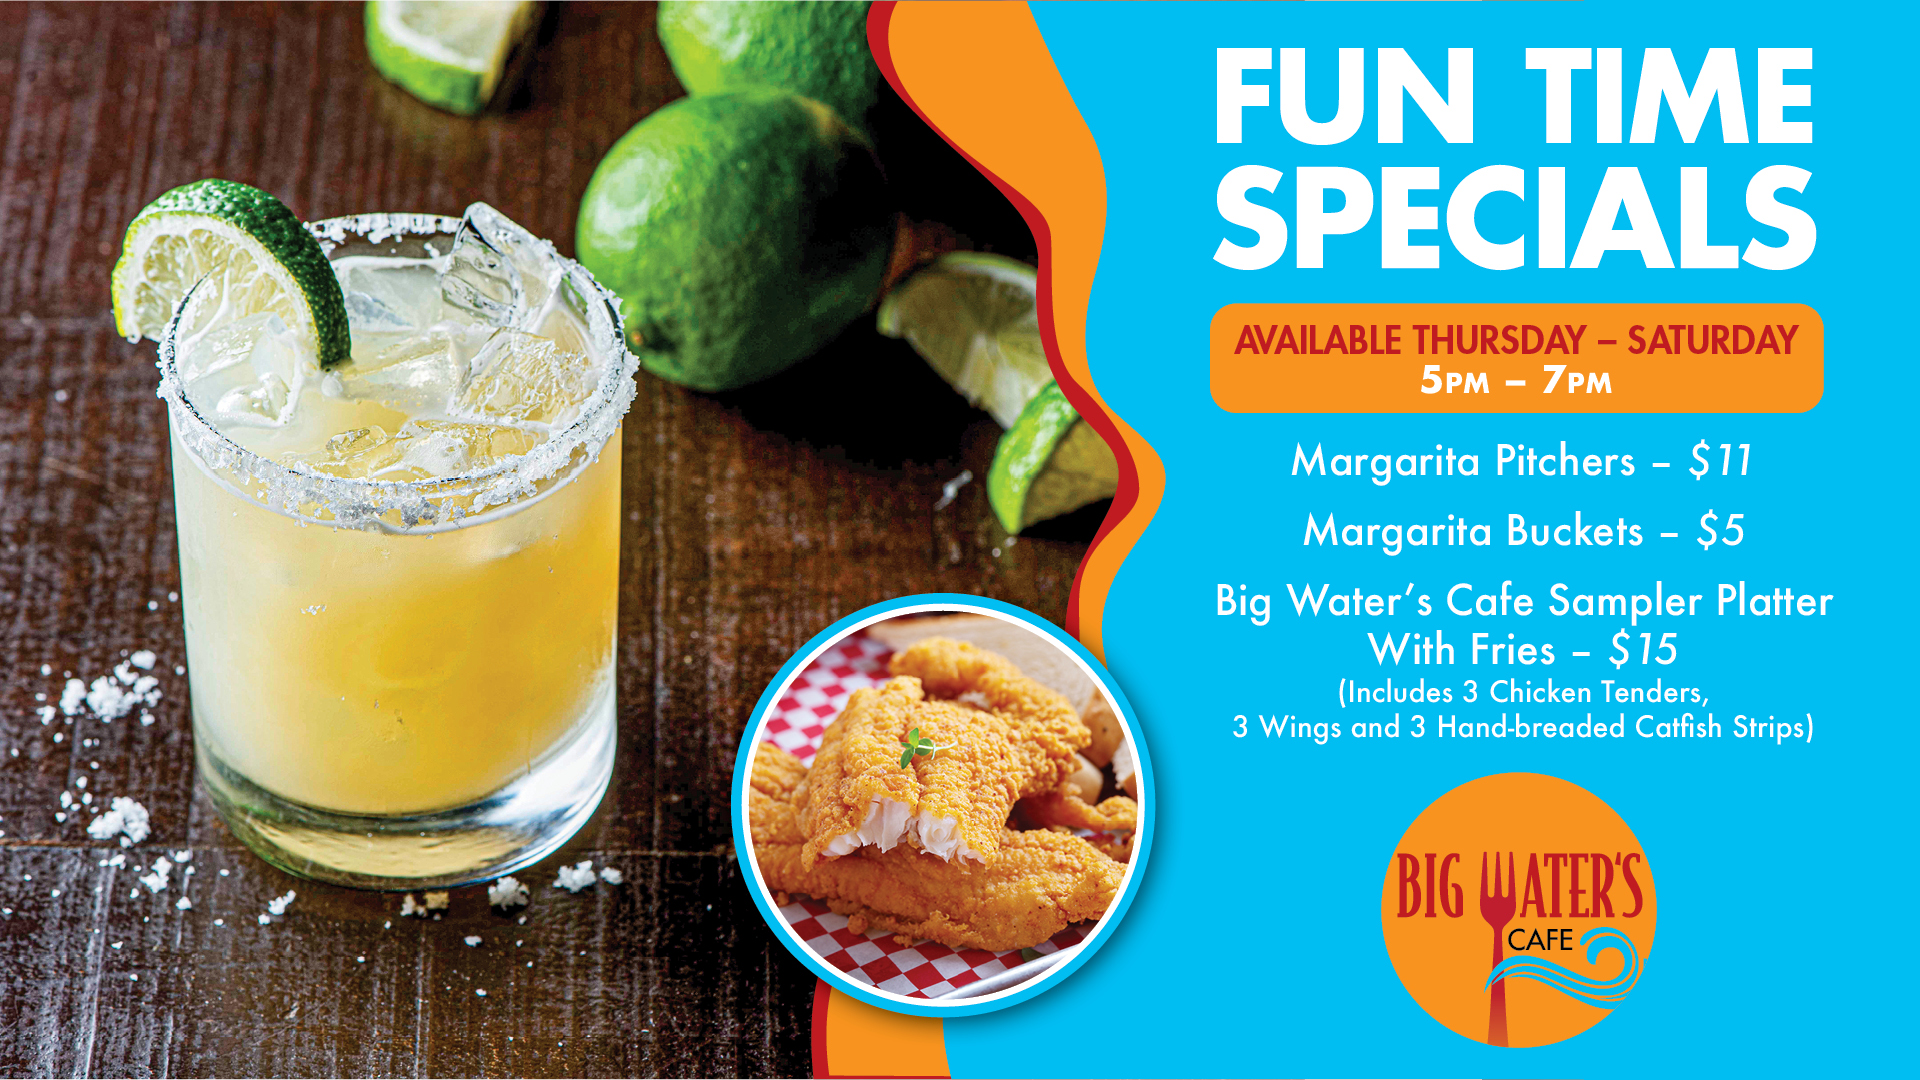 Big Water's Cafe Fun Time Specials